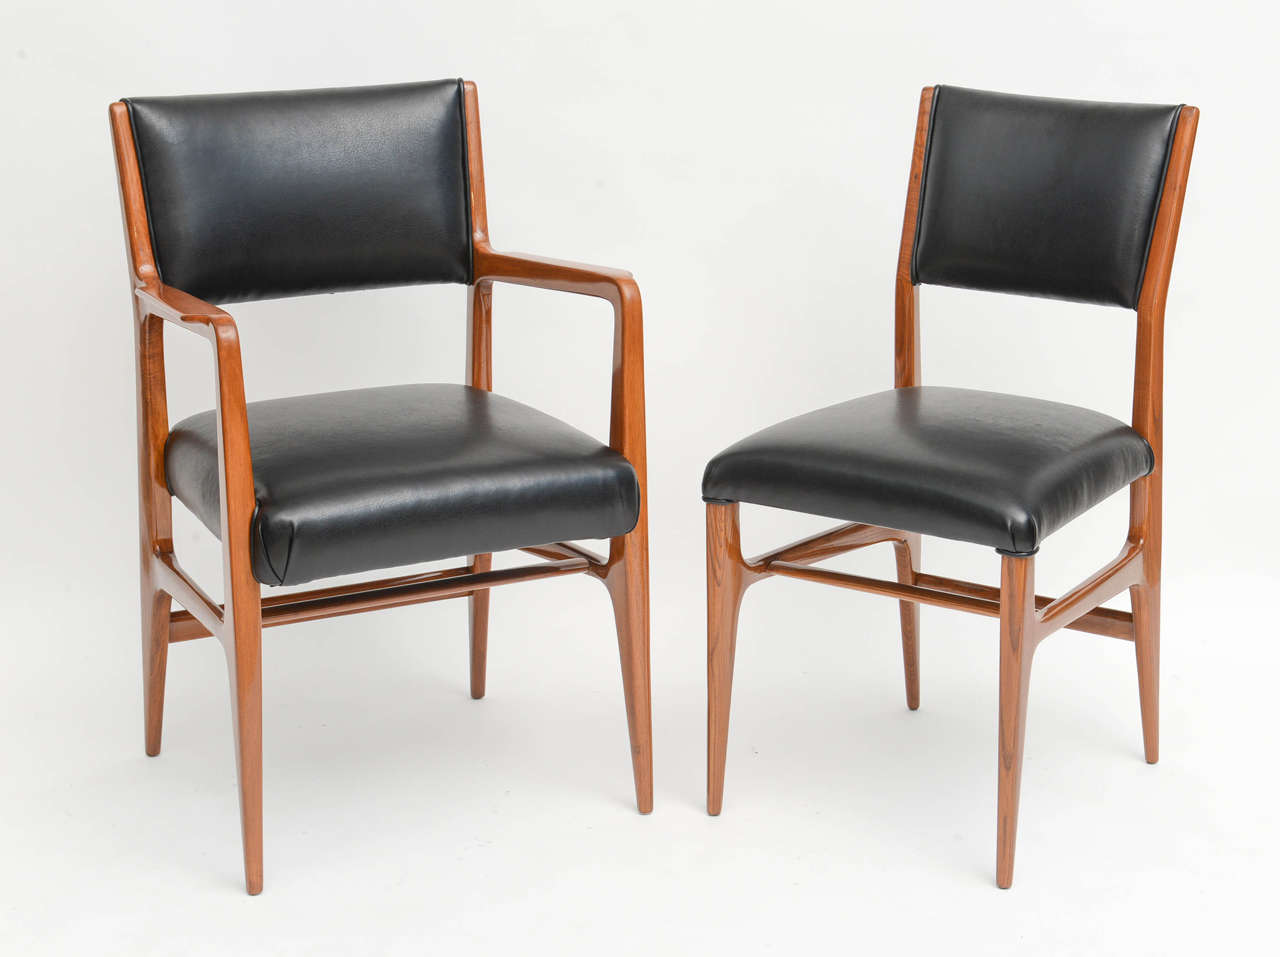 Fine Set of 12 Italian Modern Dining Chairs, Gio Ponti In Excellent Condition For Sale In Miami, FL